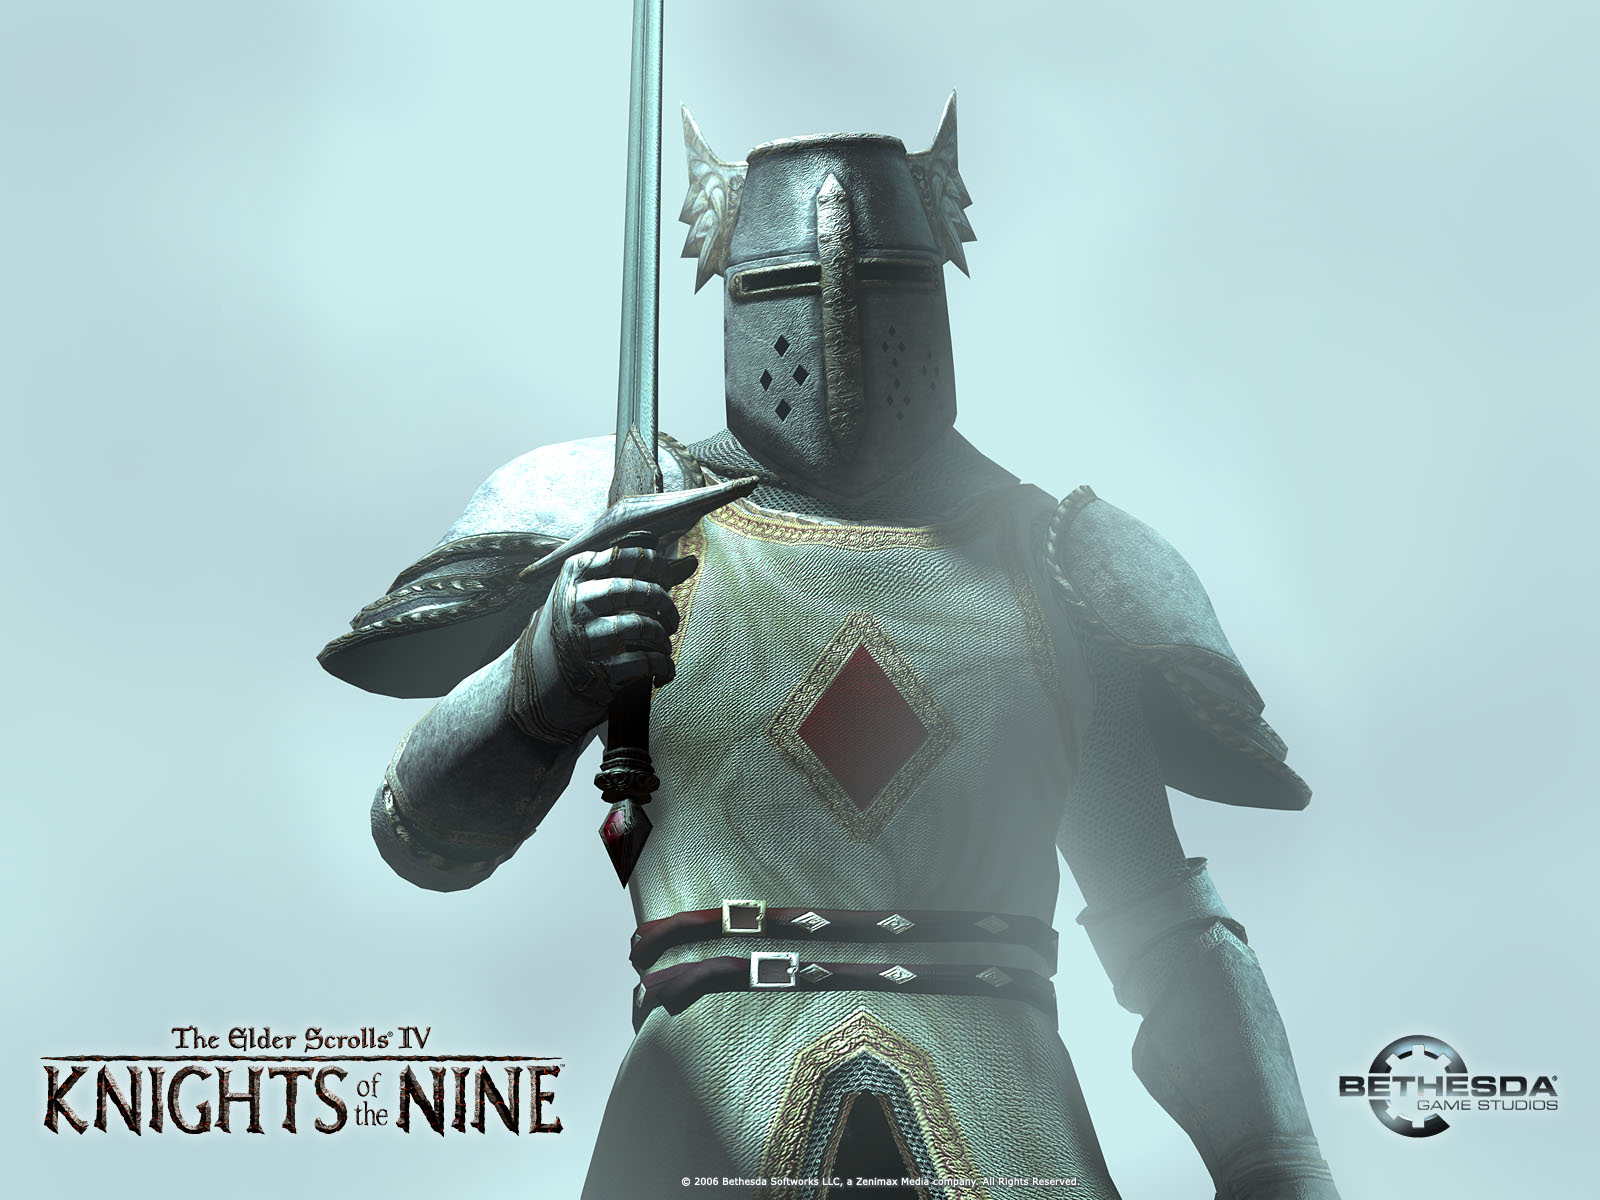 Knights of the Nine Wallpaper - The Crusader